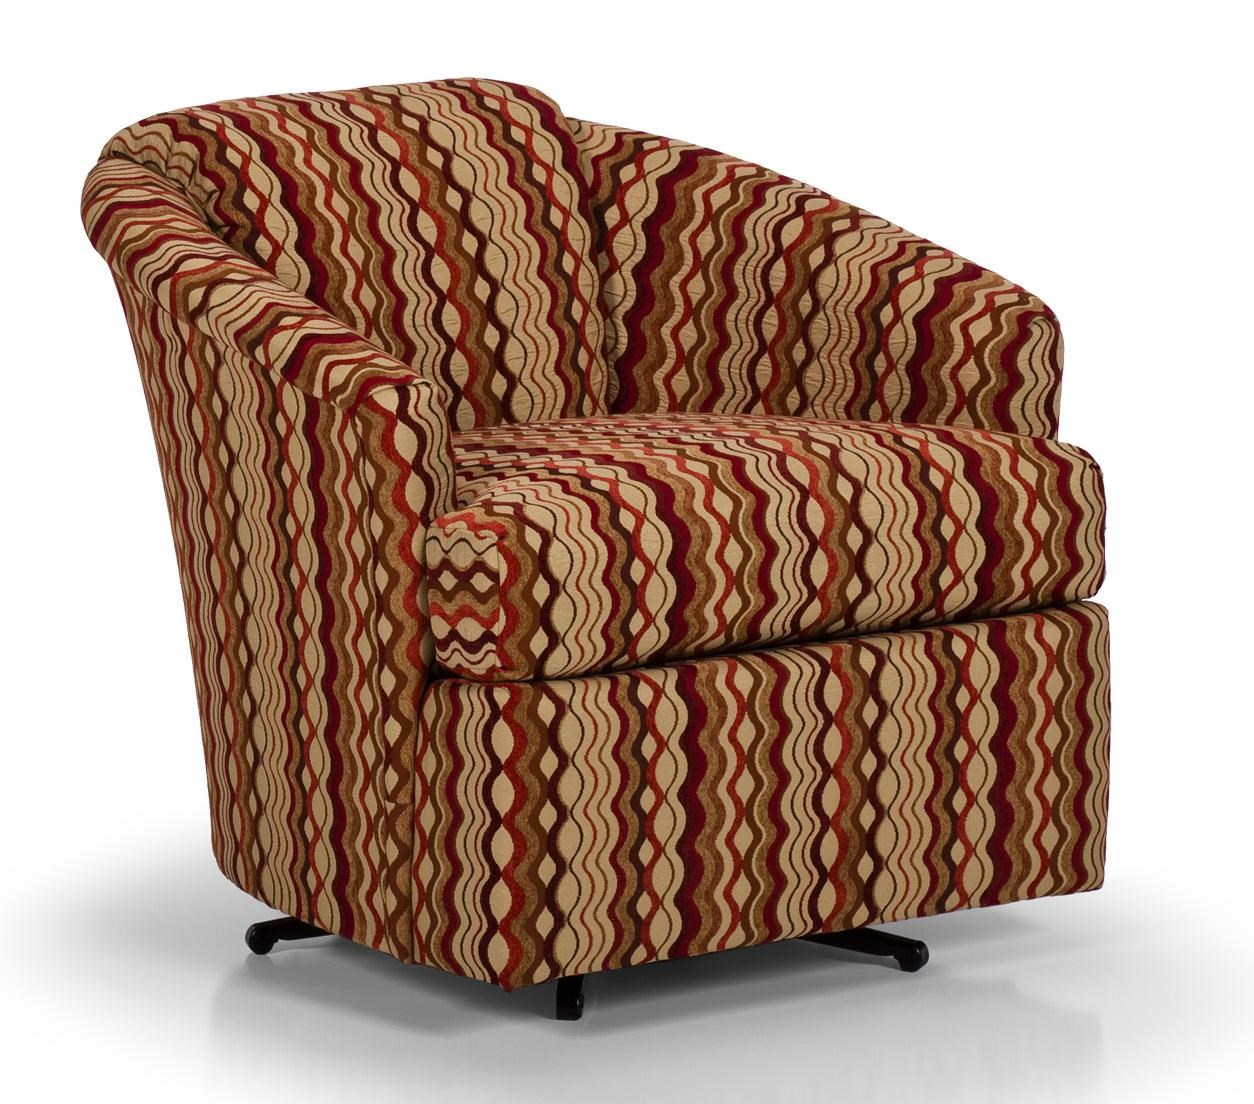 Stanton Accent Chairs And Ottomans Contemporary Swivel Chair